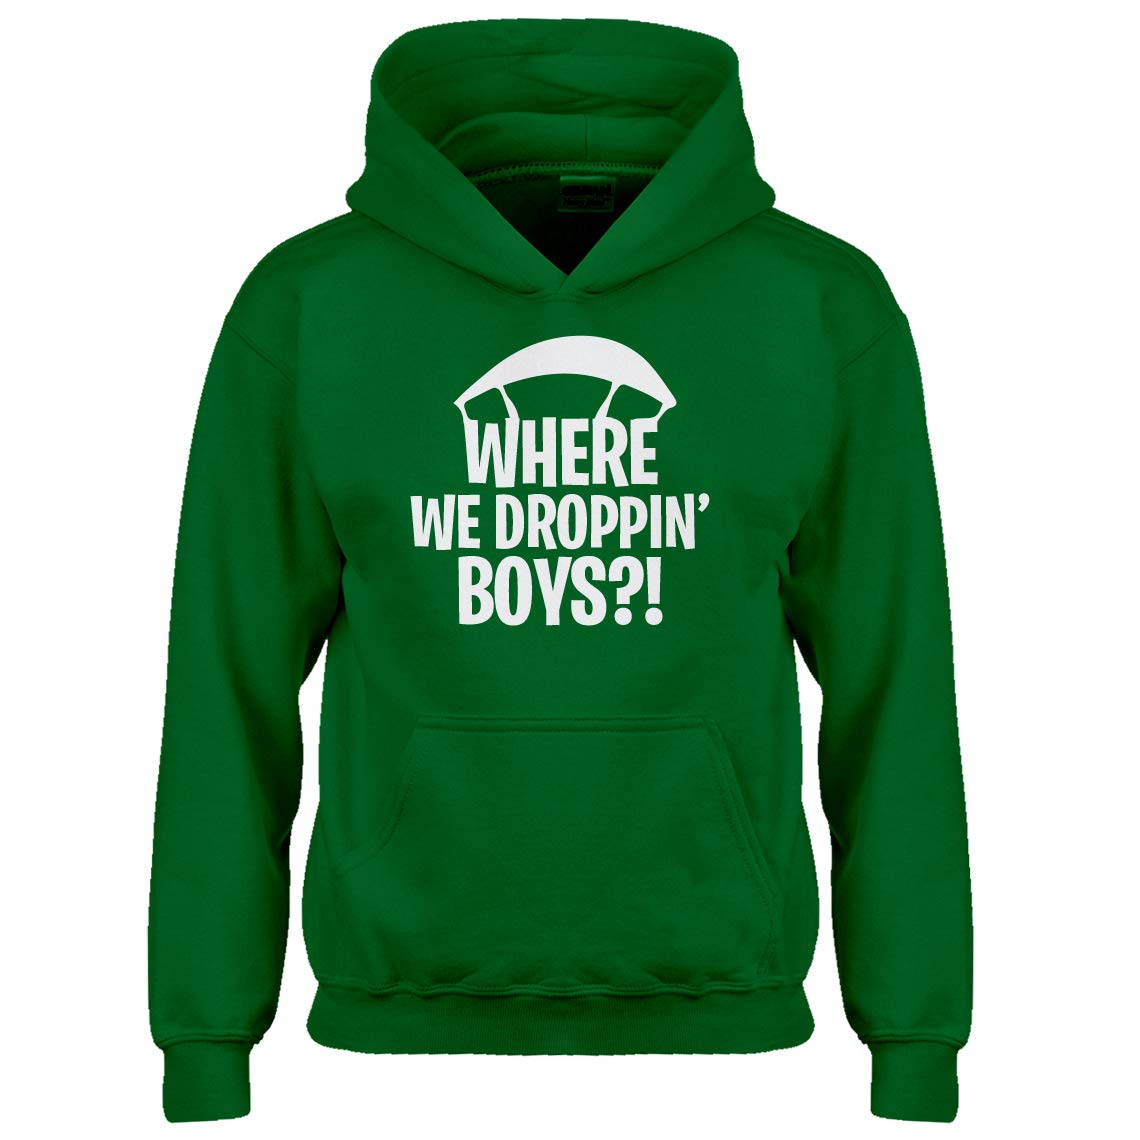 Indica Plateau Youth Where we Droppin' Boys?! Kids Hoodie 3748-Z